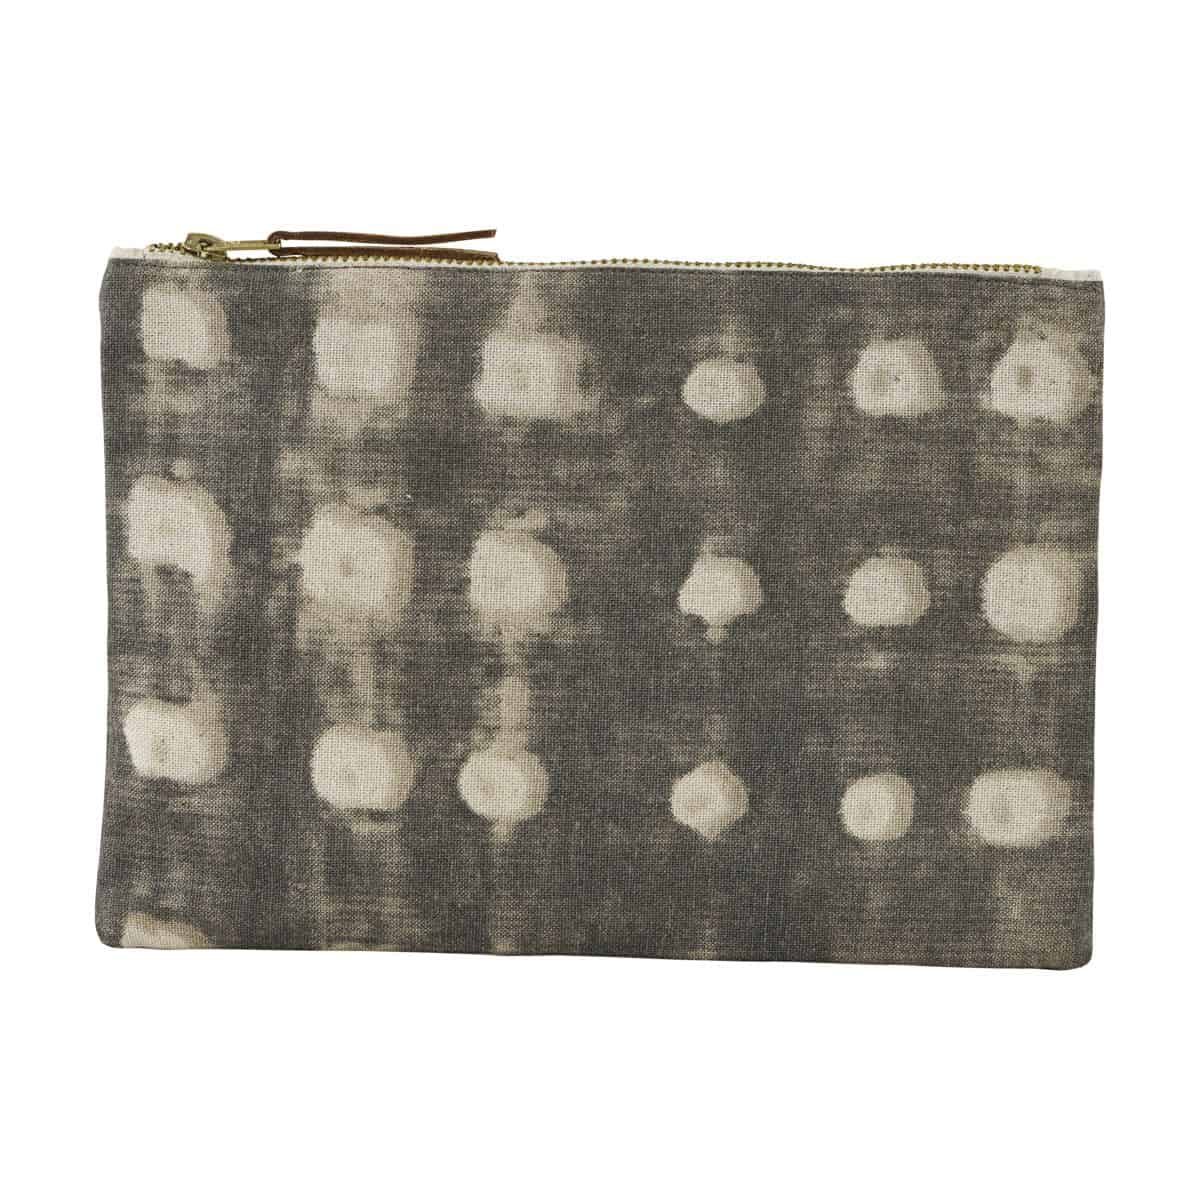 Make-Up-Tasche, Grau| 23×16